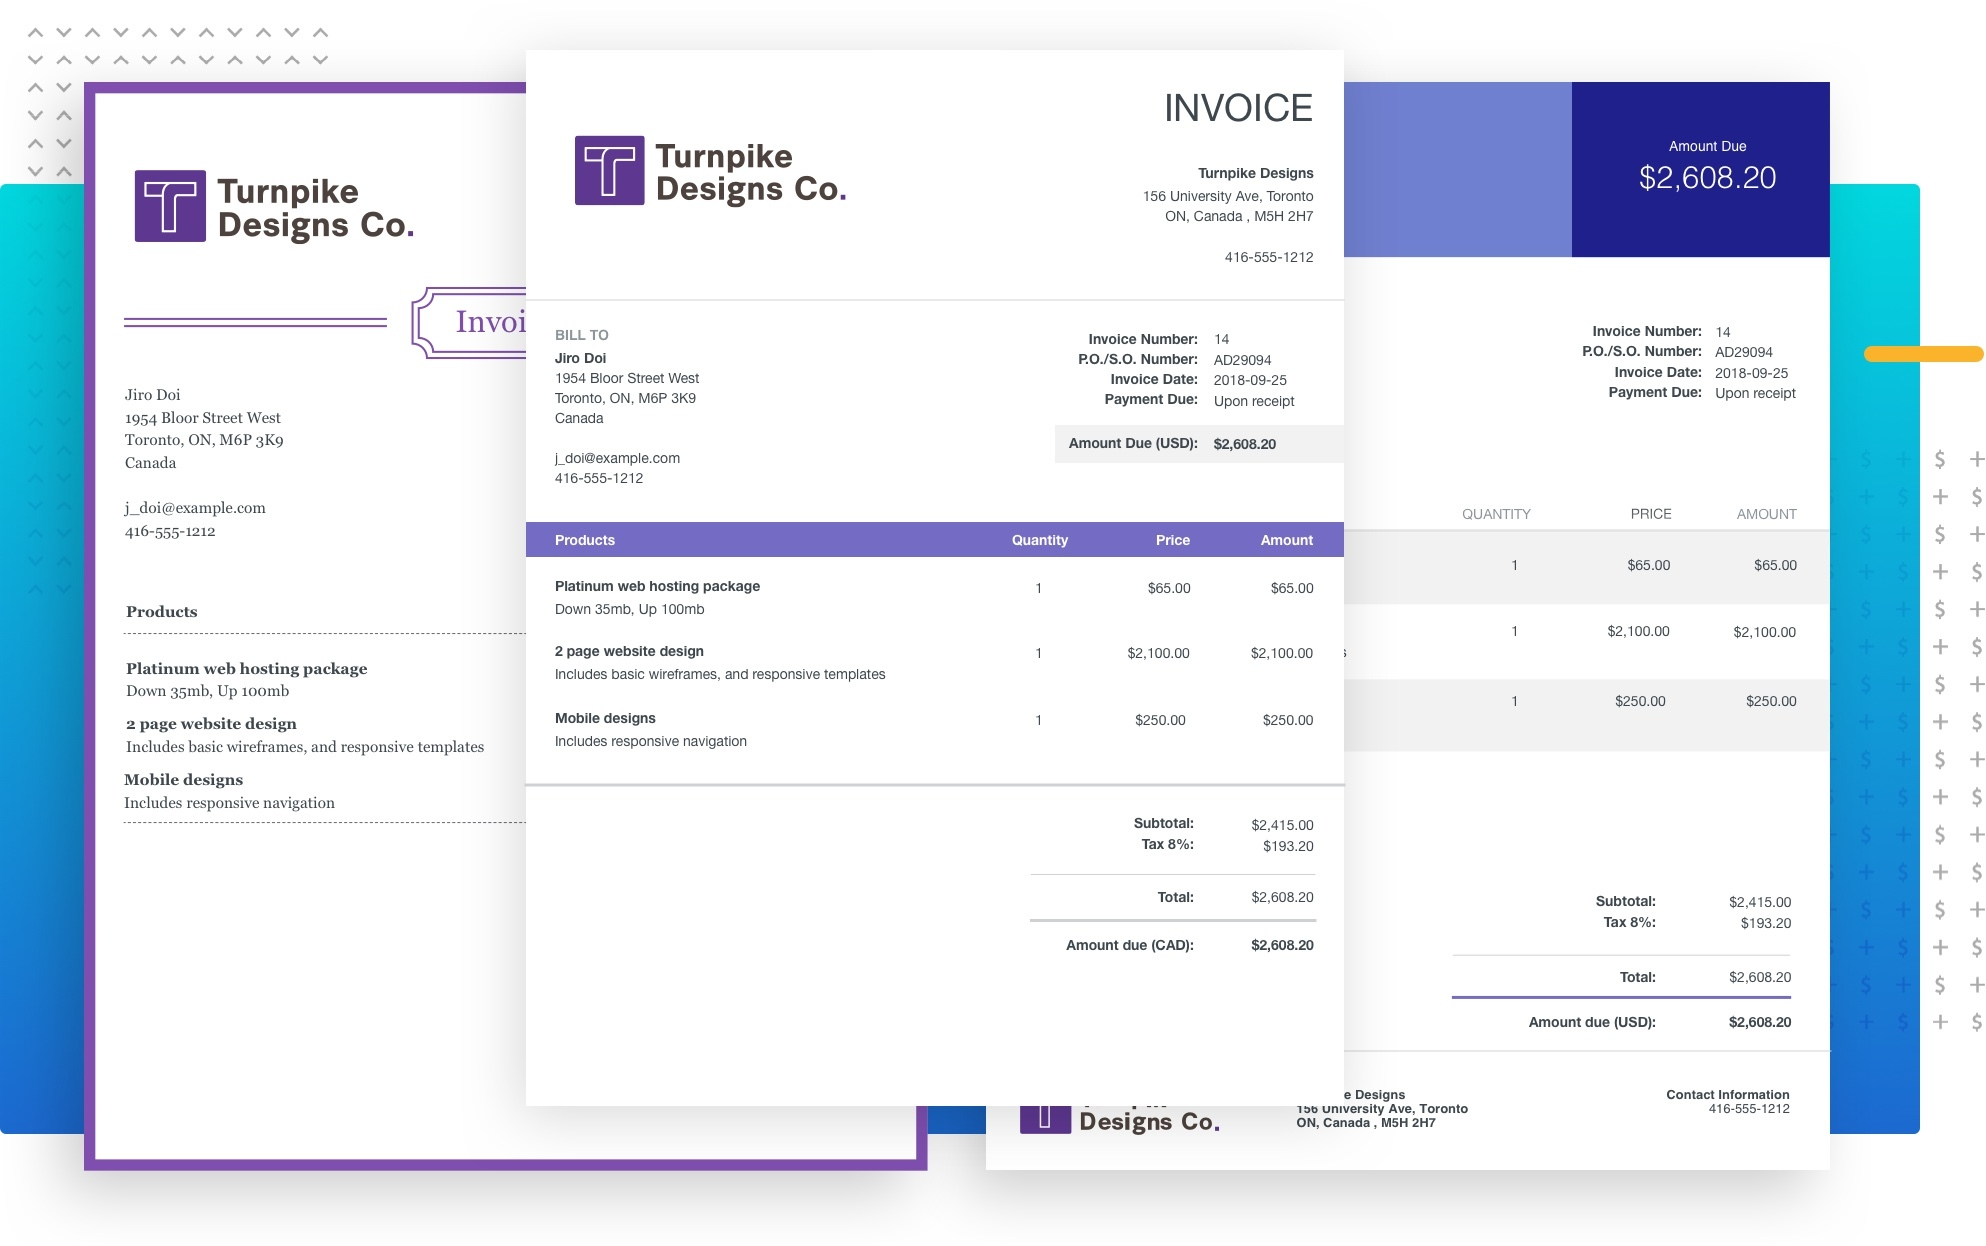 Our invoice templates